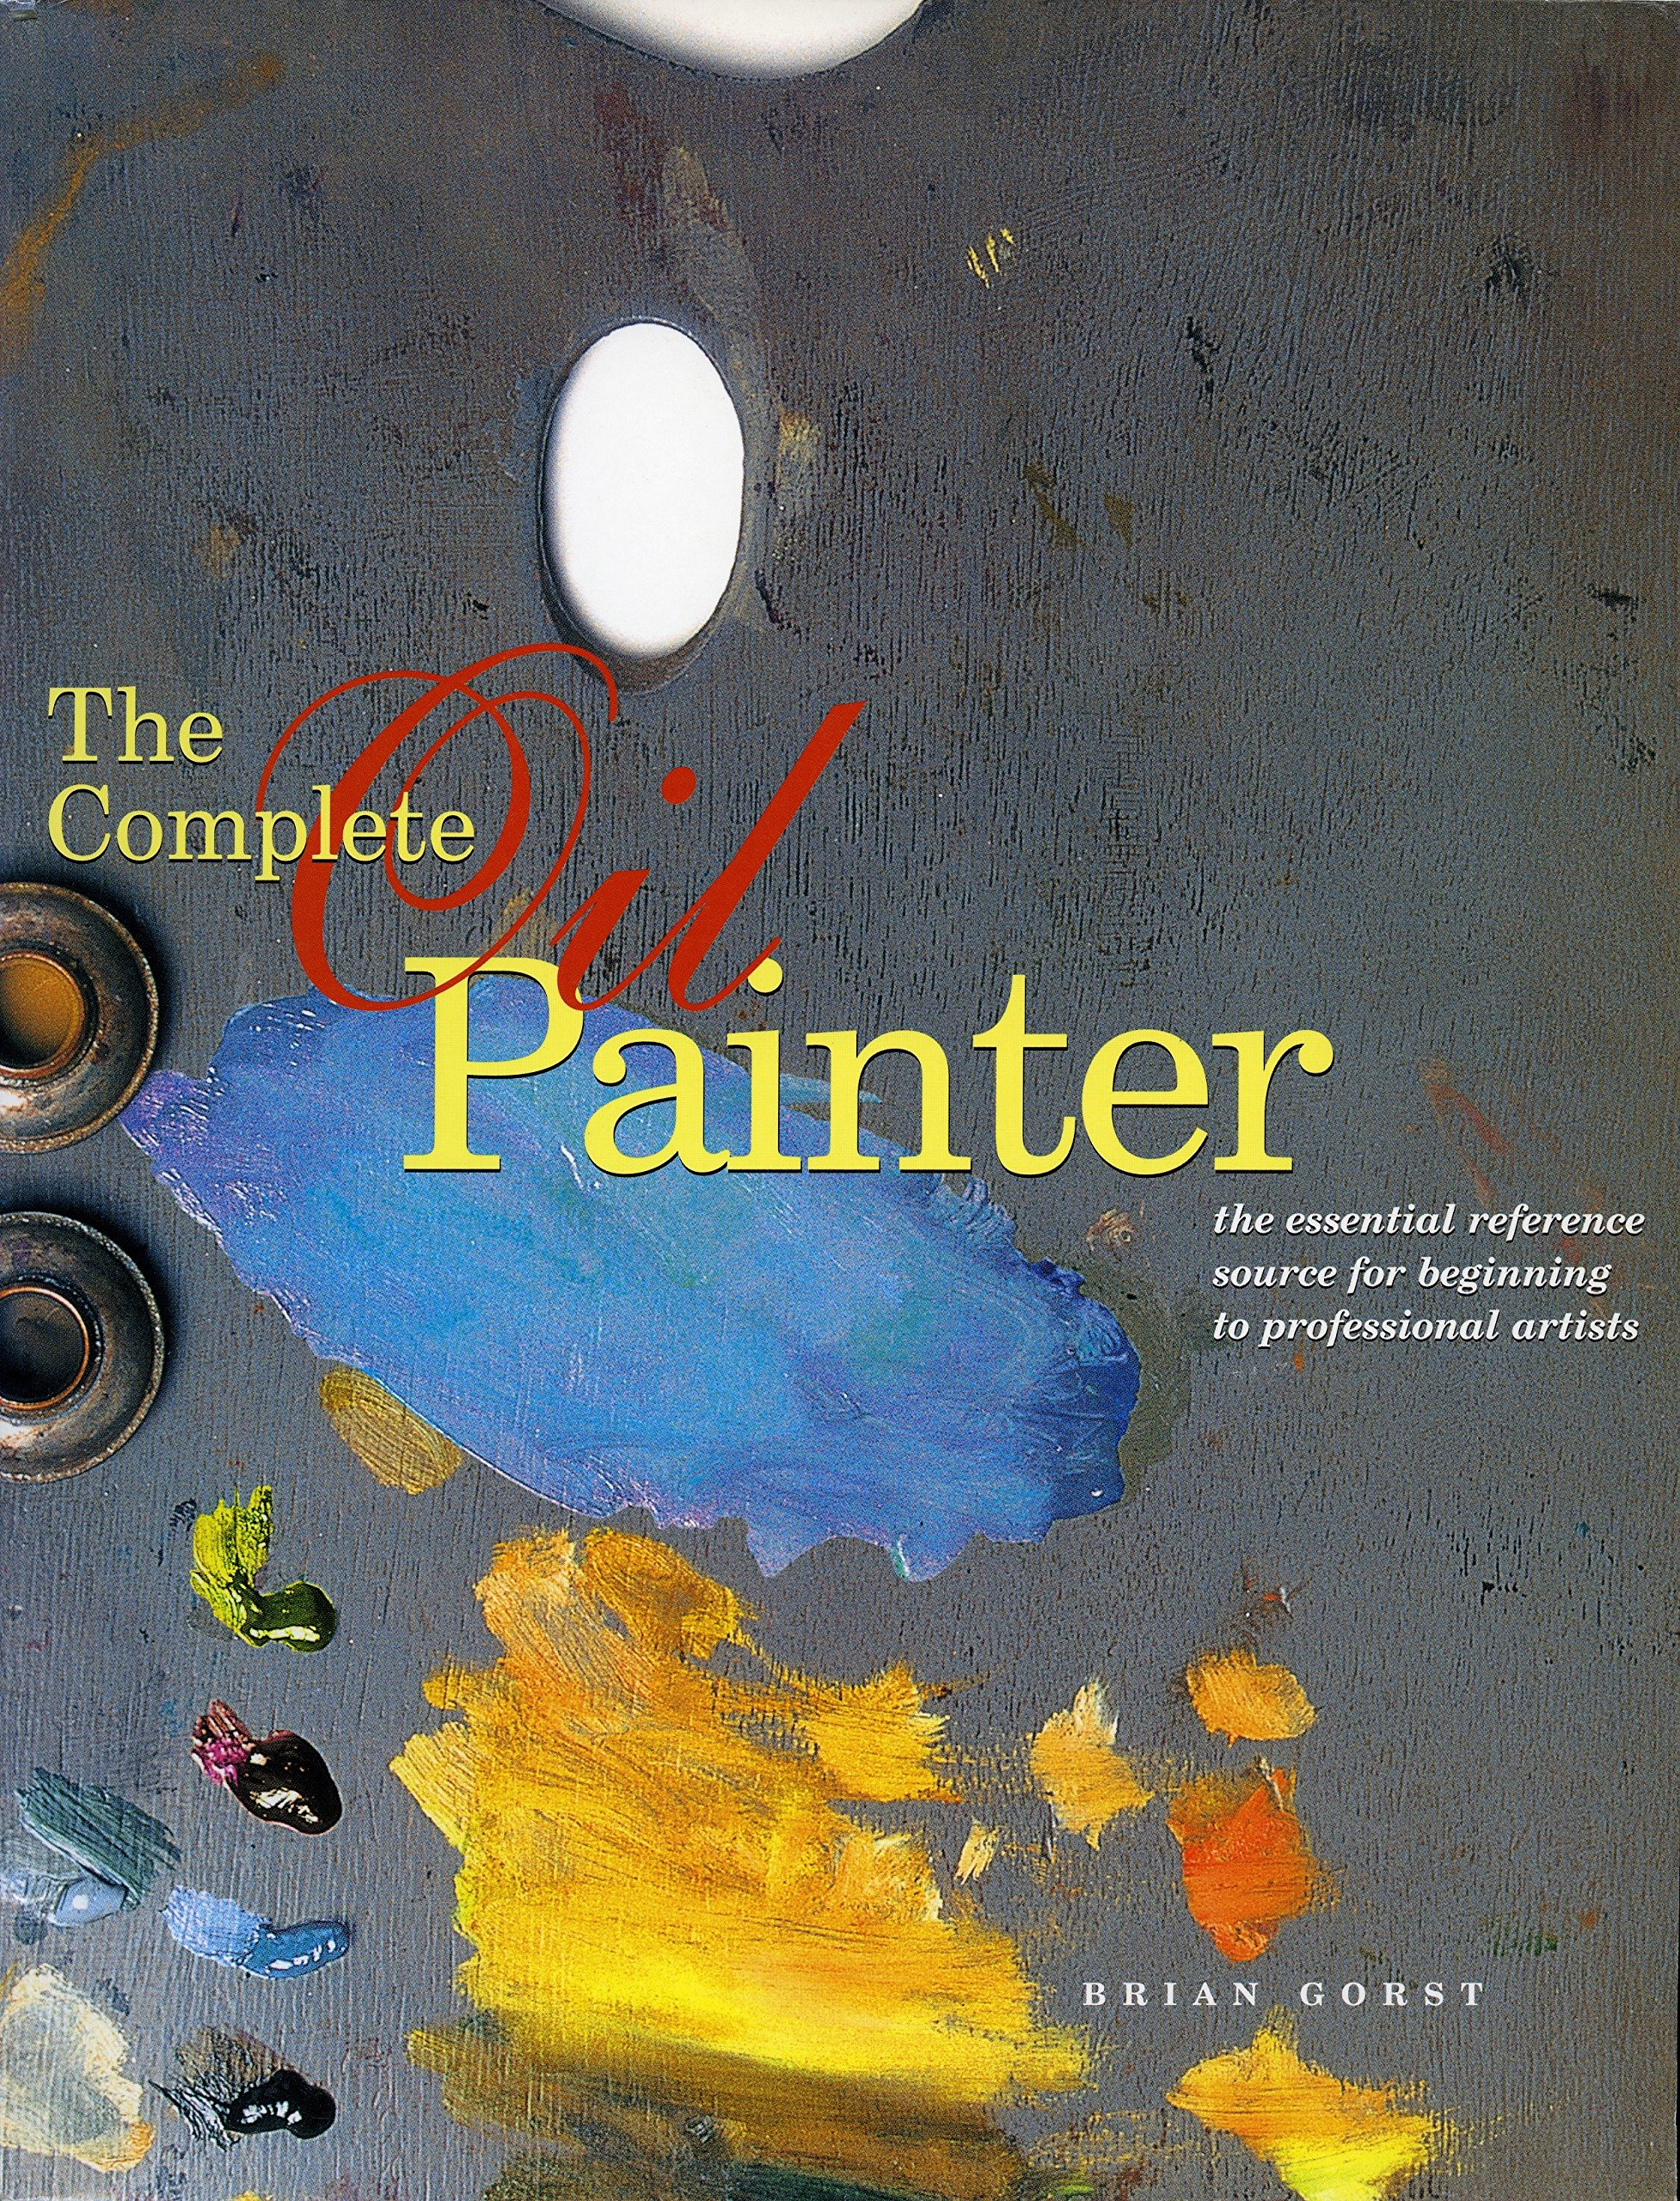 The Complete Oil Painter: The Essential Reference for Beginners to  Professionals: Brian Gorst: 9780823008551: Amazon.com: Books